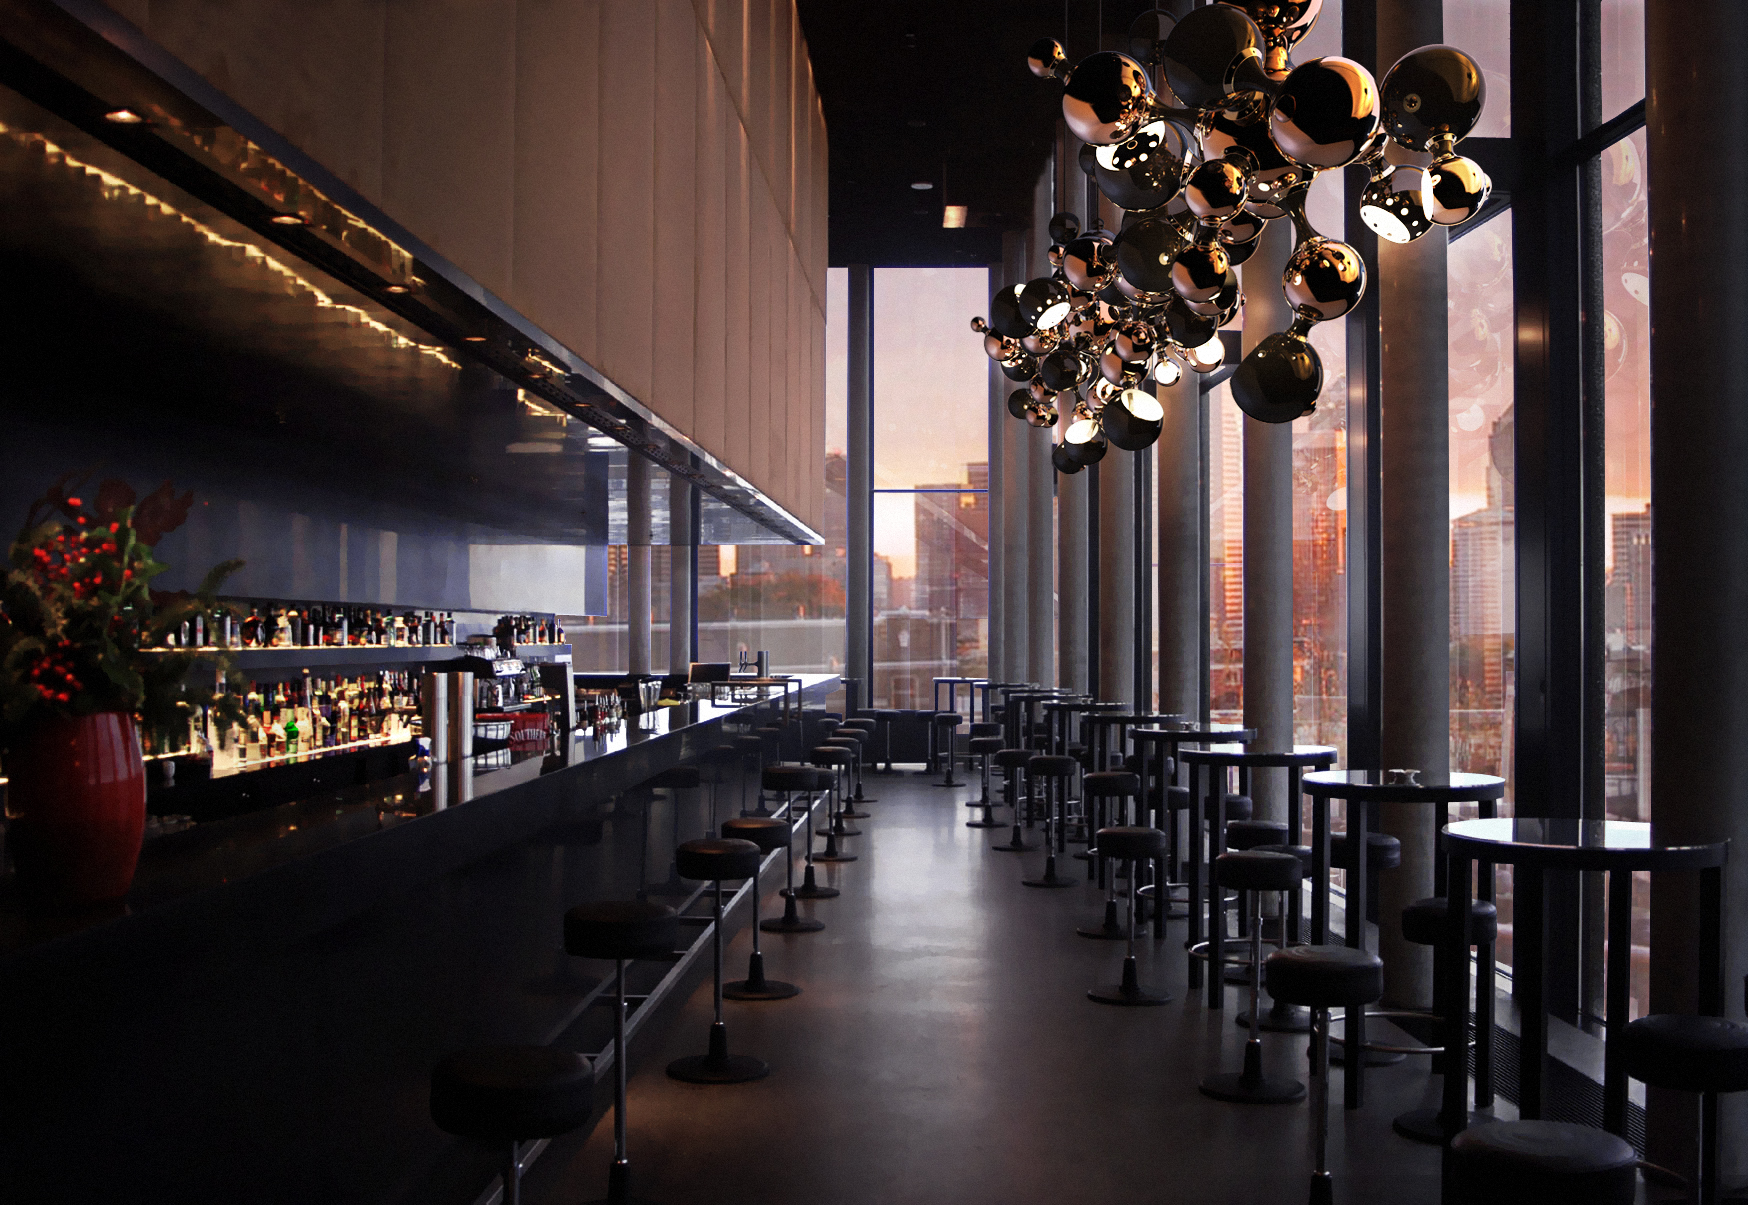 The Restaurant Design Trends You Need to Meet! 2 restaurant design trends The Restaurant Design Trends You Need to Meet! The Restaurant Design Trends You Need to Meet 2